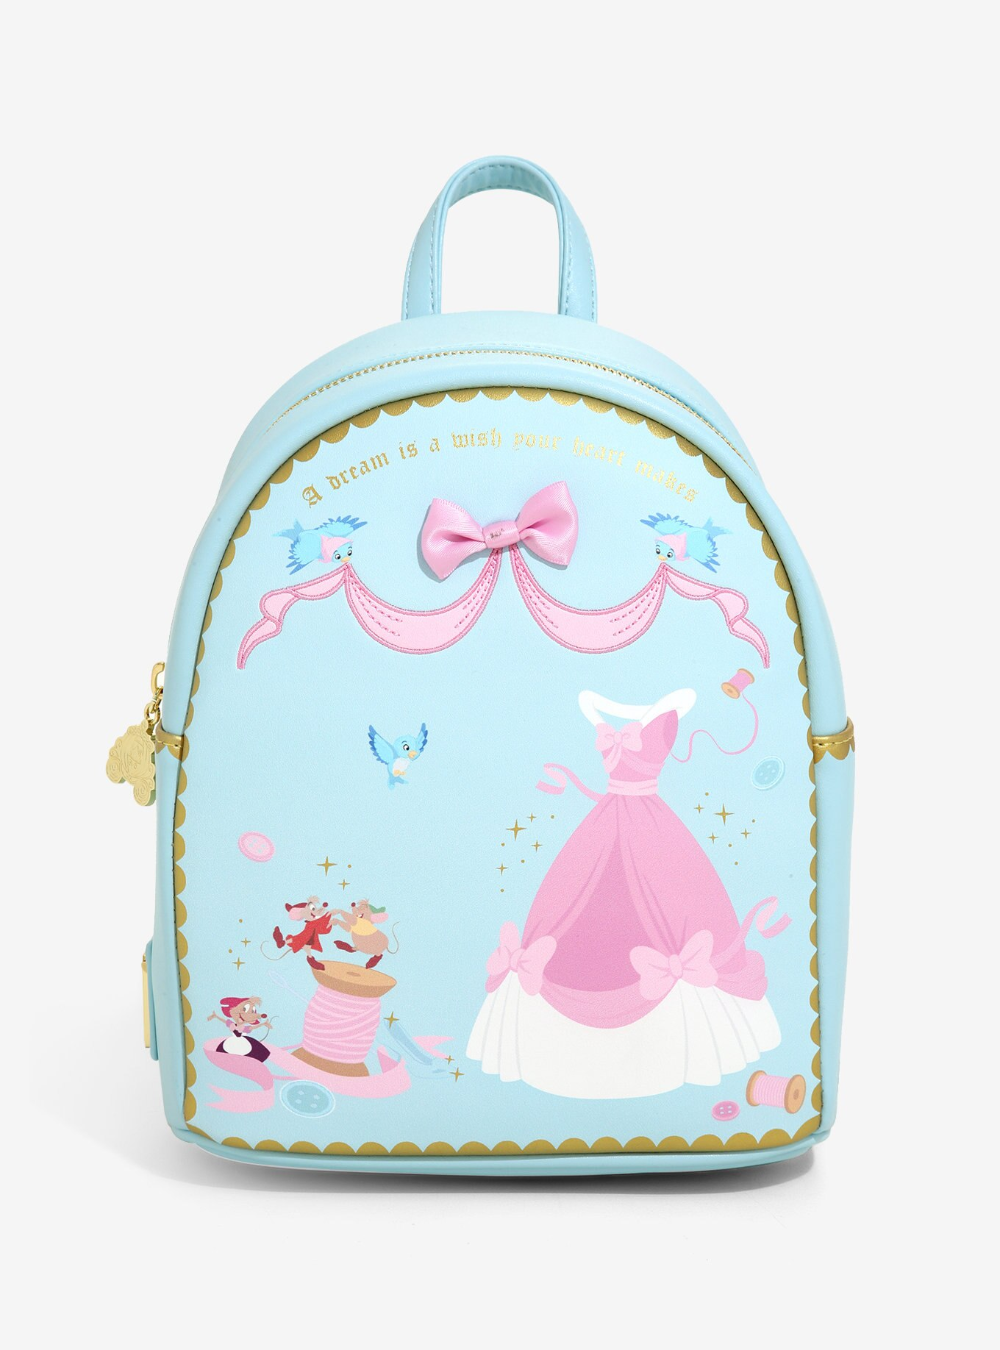 Disney Stitch Holographic Girls Backpack primark new kids small hearts